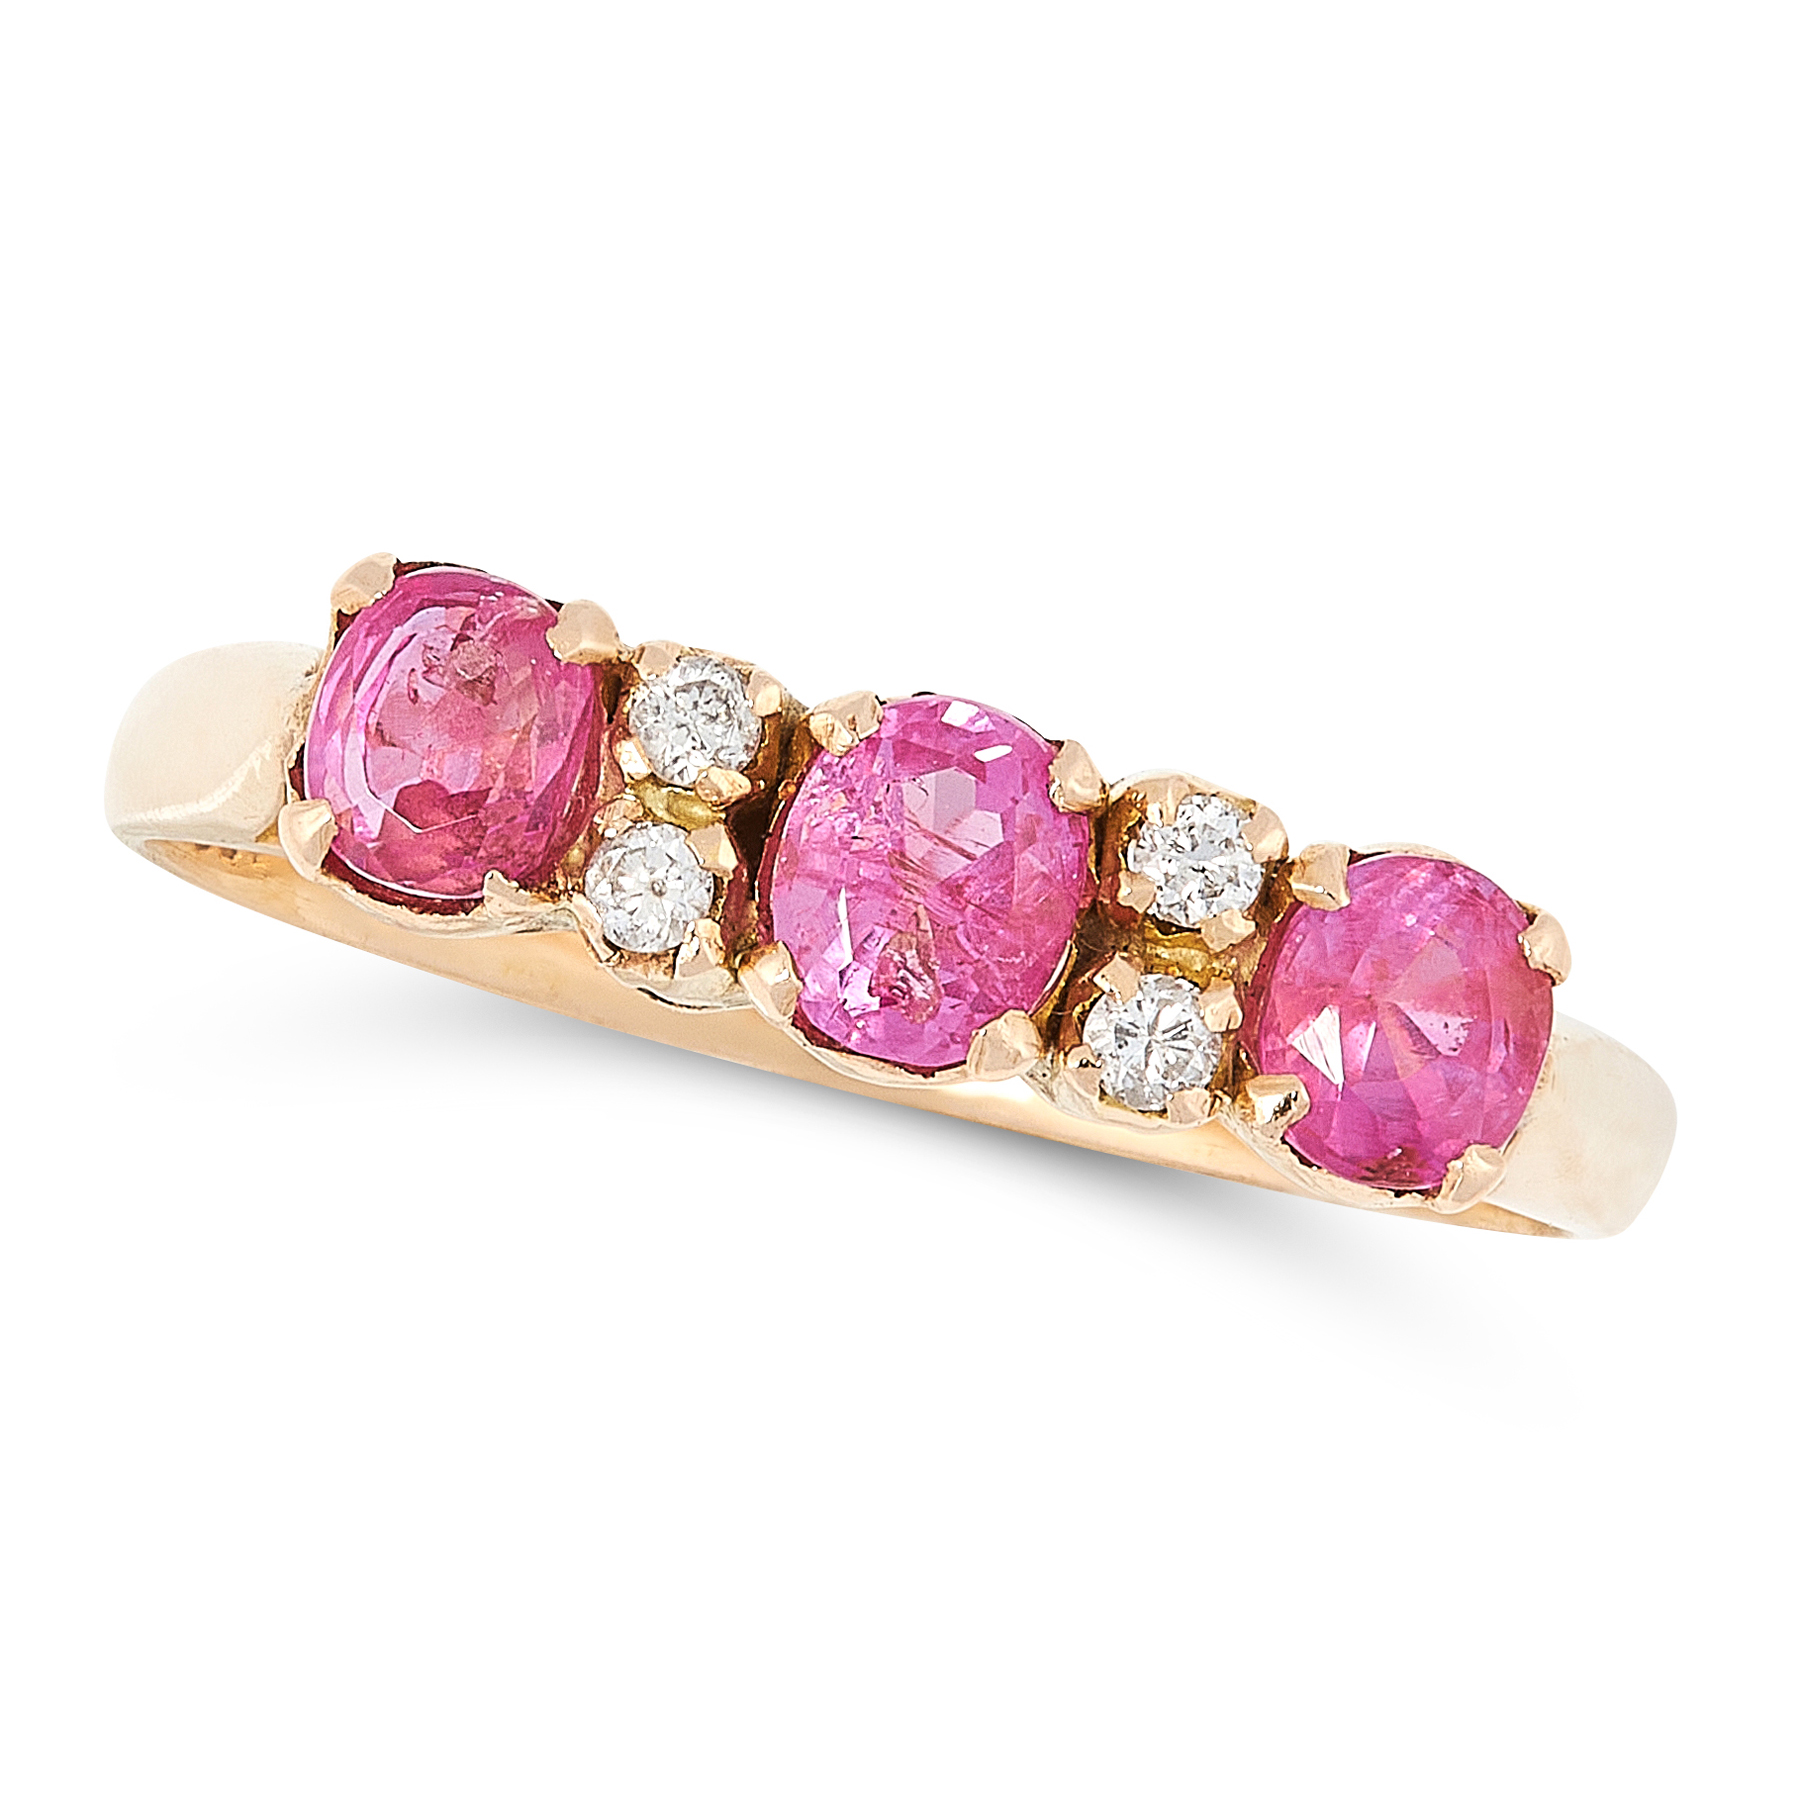 A PINK SAPPHIRE AND DIAMOND RING in 18ct yellow gold, set with a trio of graduated oval cut pink